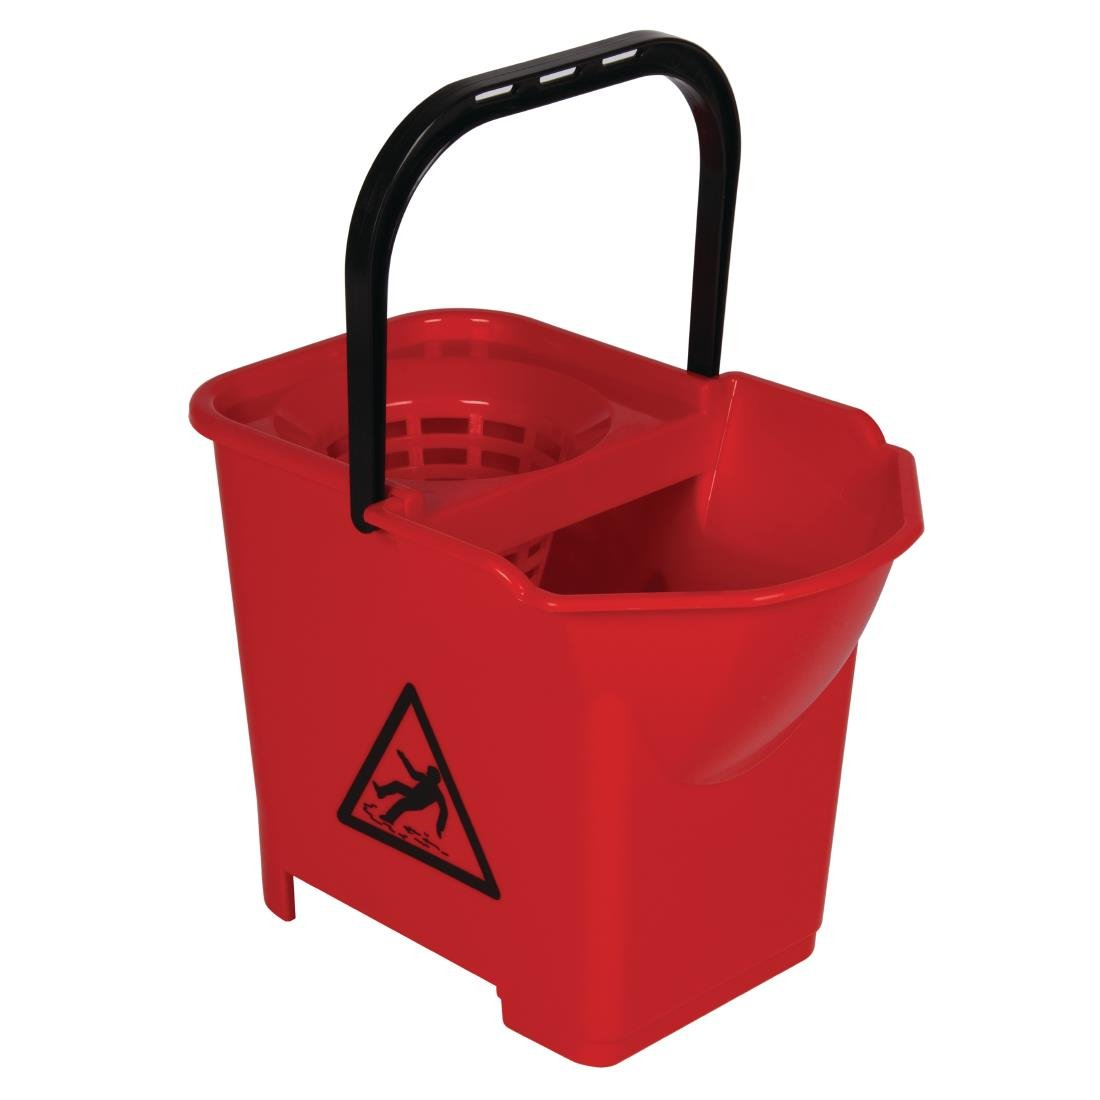 Jantex Colour Coded Mop Bucket Red